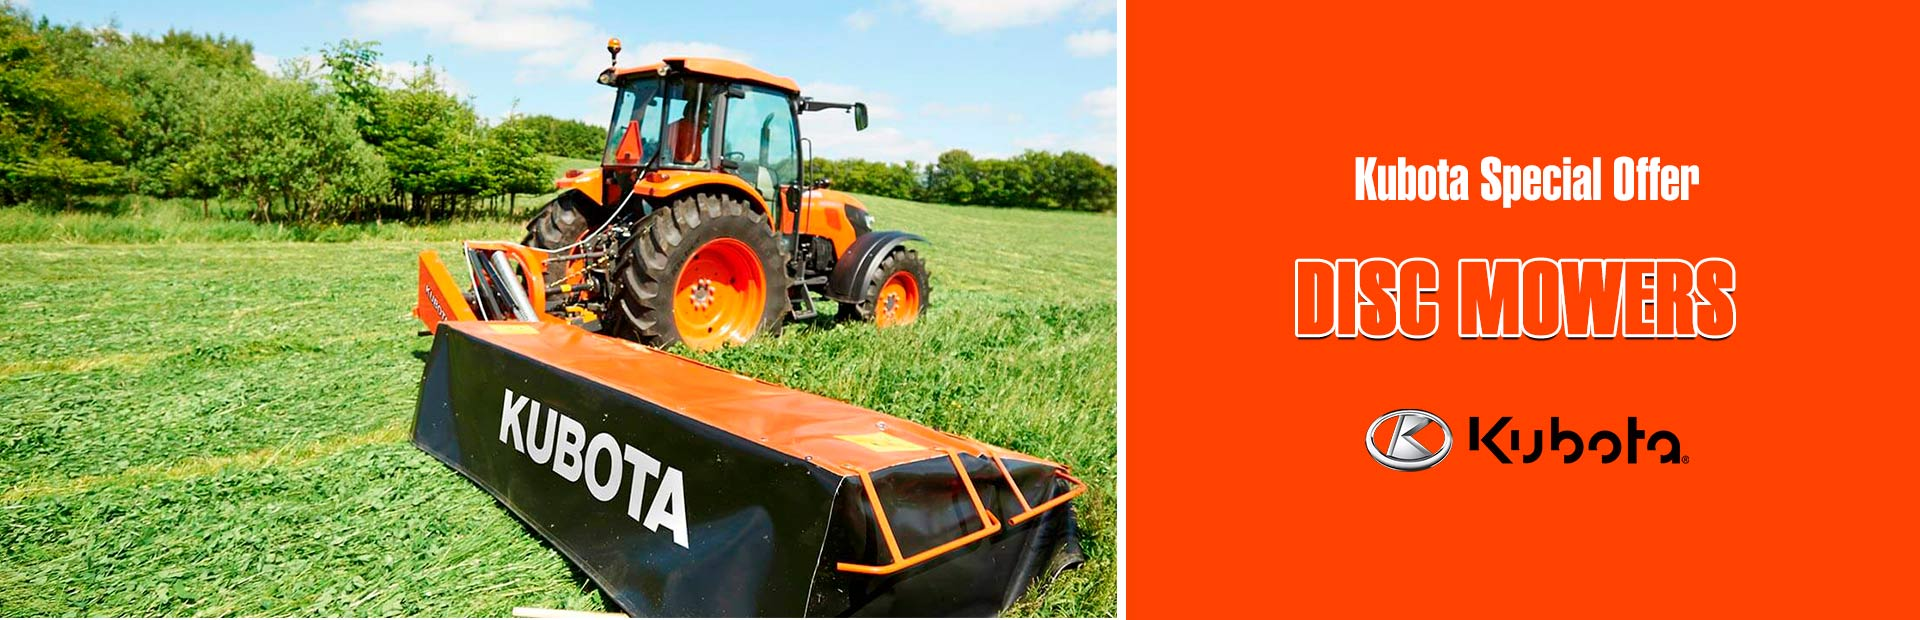 Kubota: Kubota Special Offer - Disc Mowers